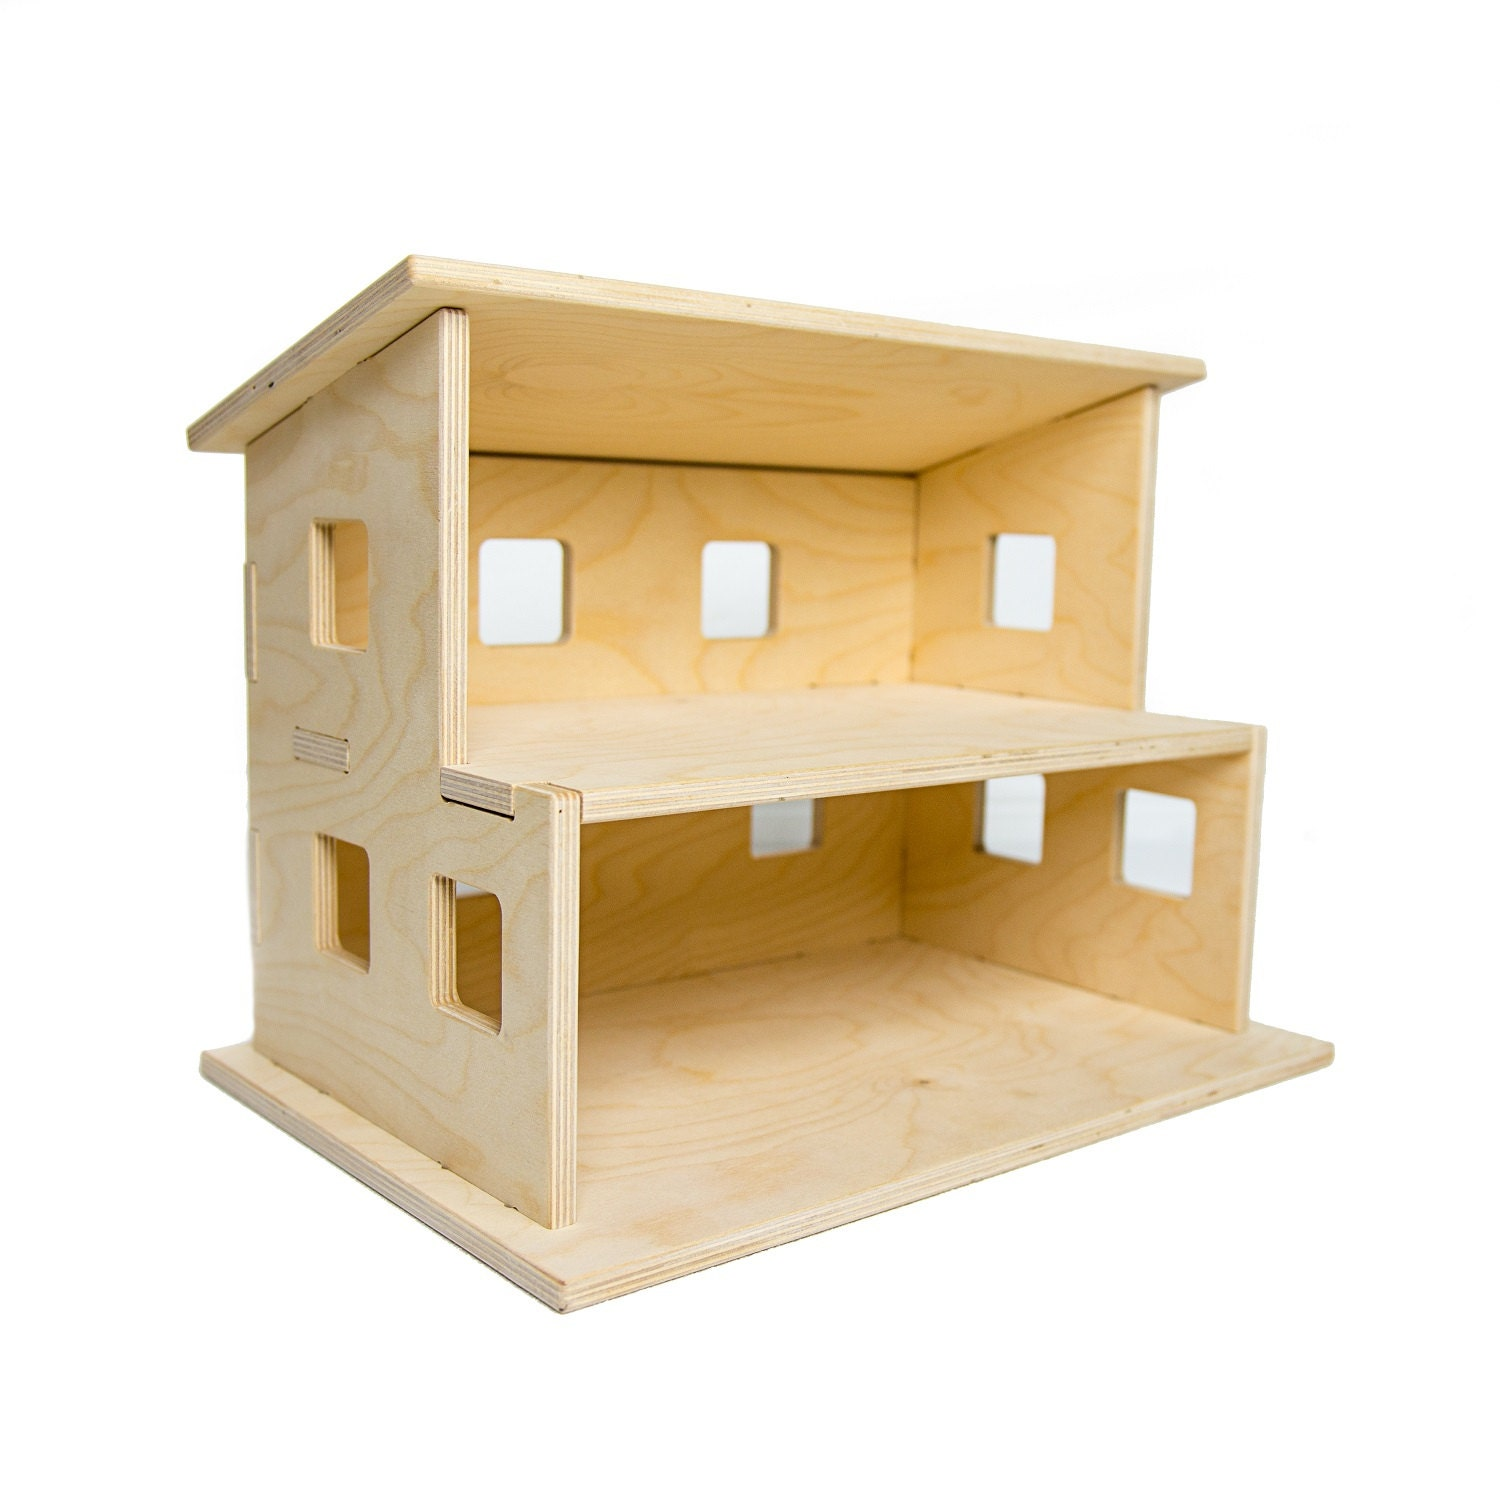 Wood Dollhouse Kids Toy Handmade Wooden Toy Doll House